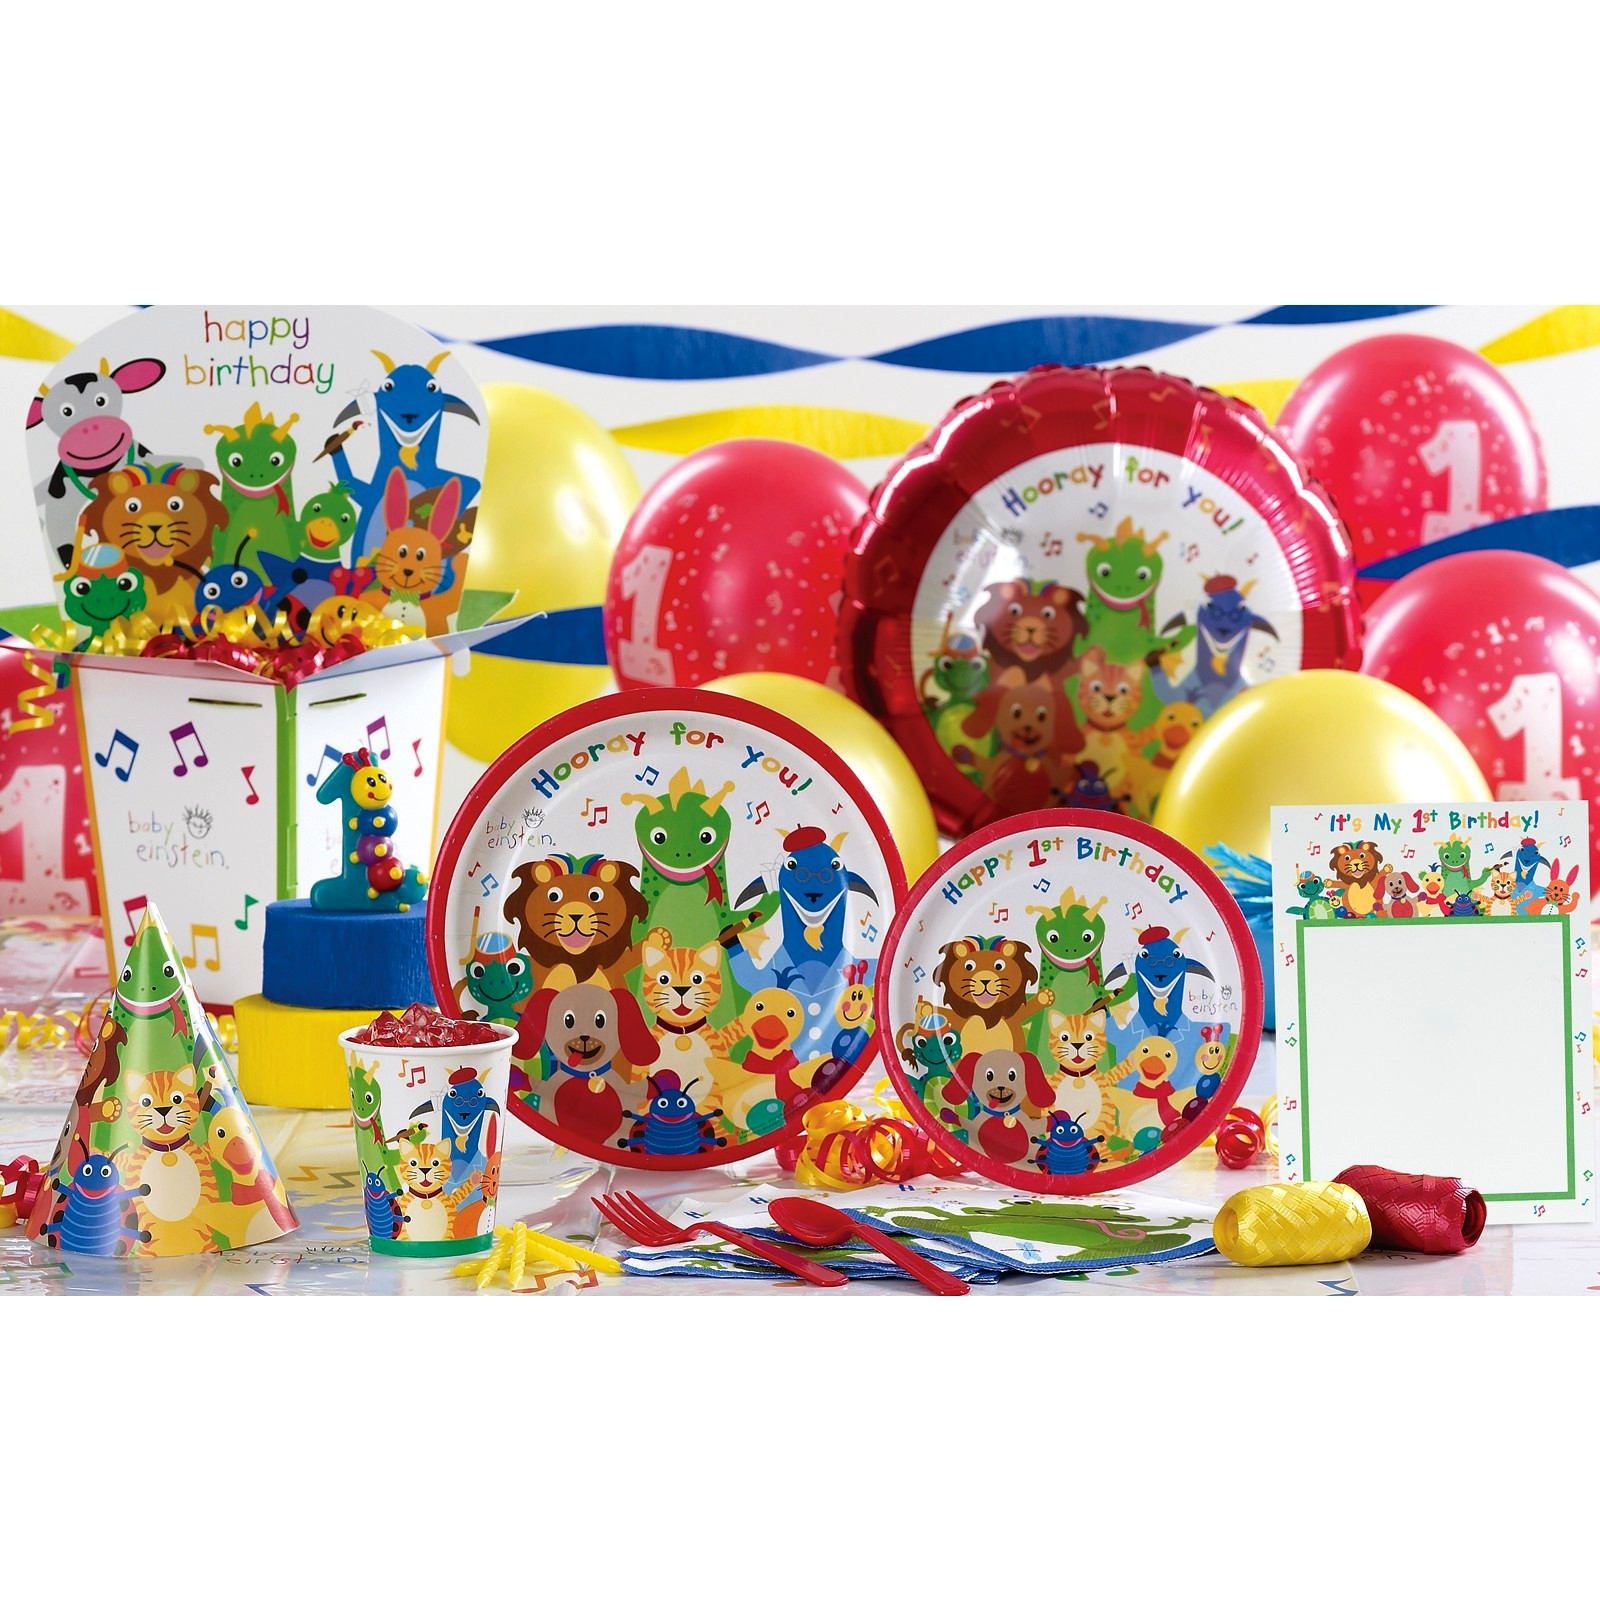 Baby einstein birthday party ideas baby einstein birthday for Baby birthday party decoration